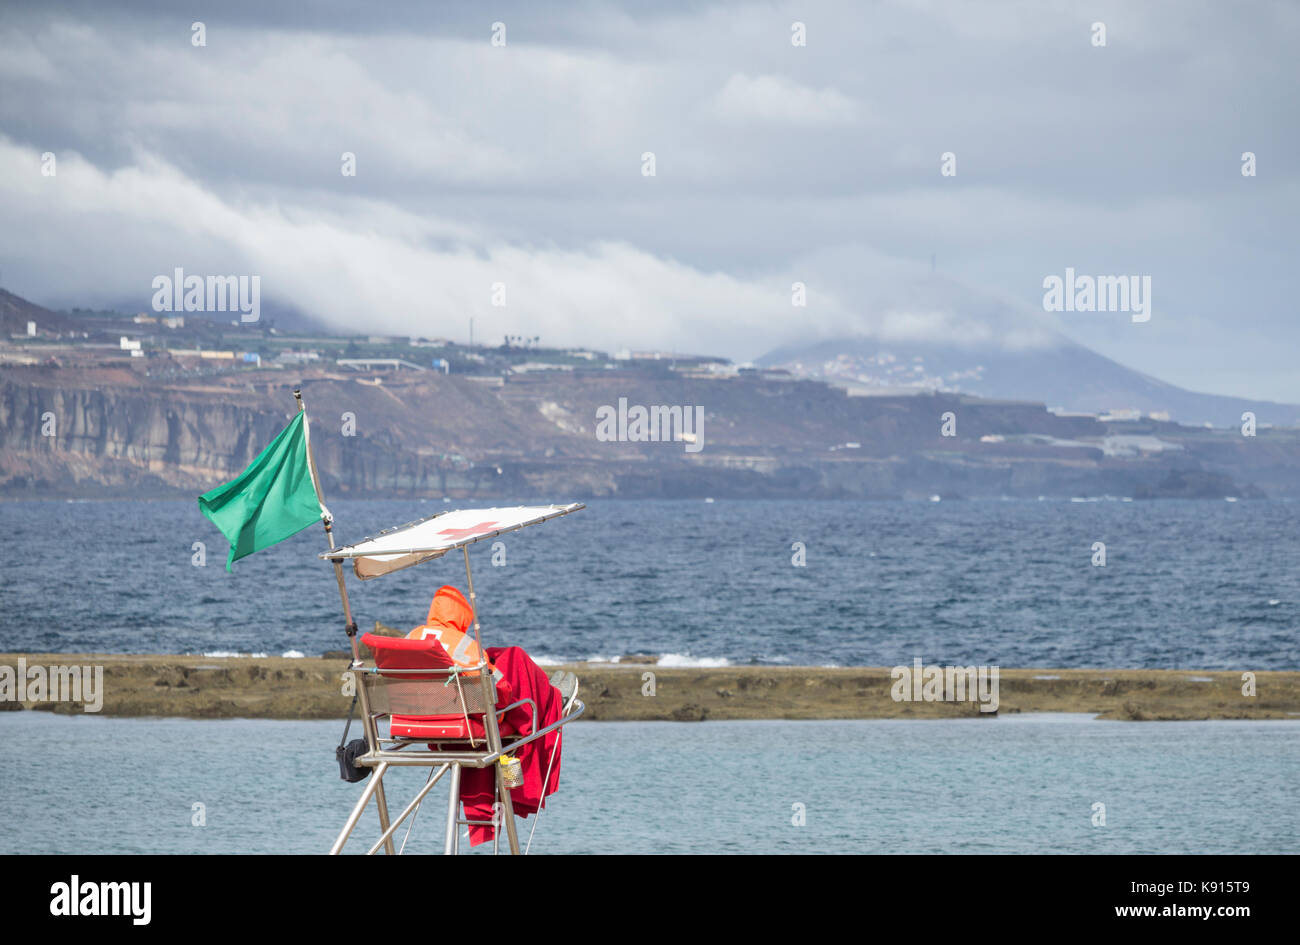 Las Palmas, Gran Canaria, Canary Islands, Spain. 21st September, 2017. Weather: A lifeguard on the city beach in - Stock Image